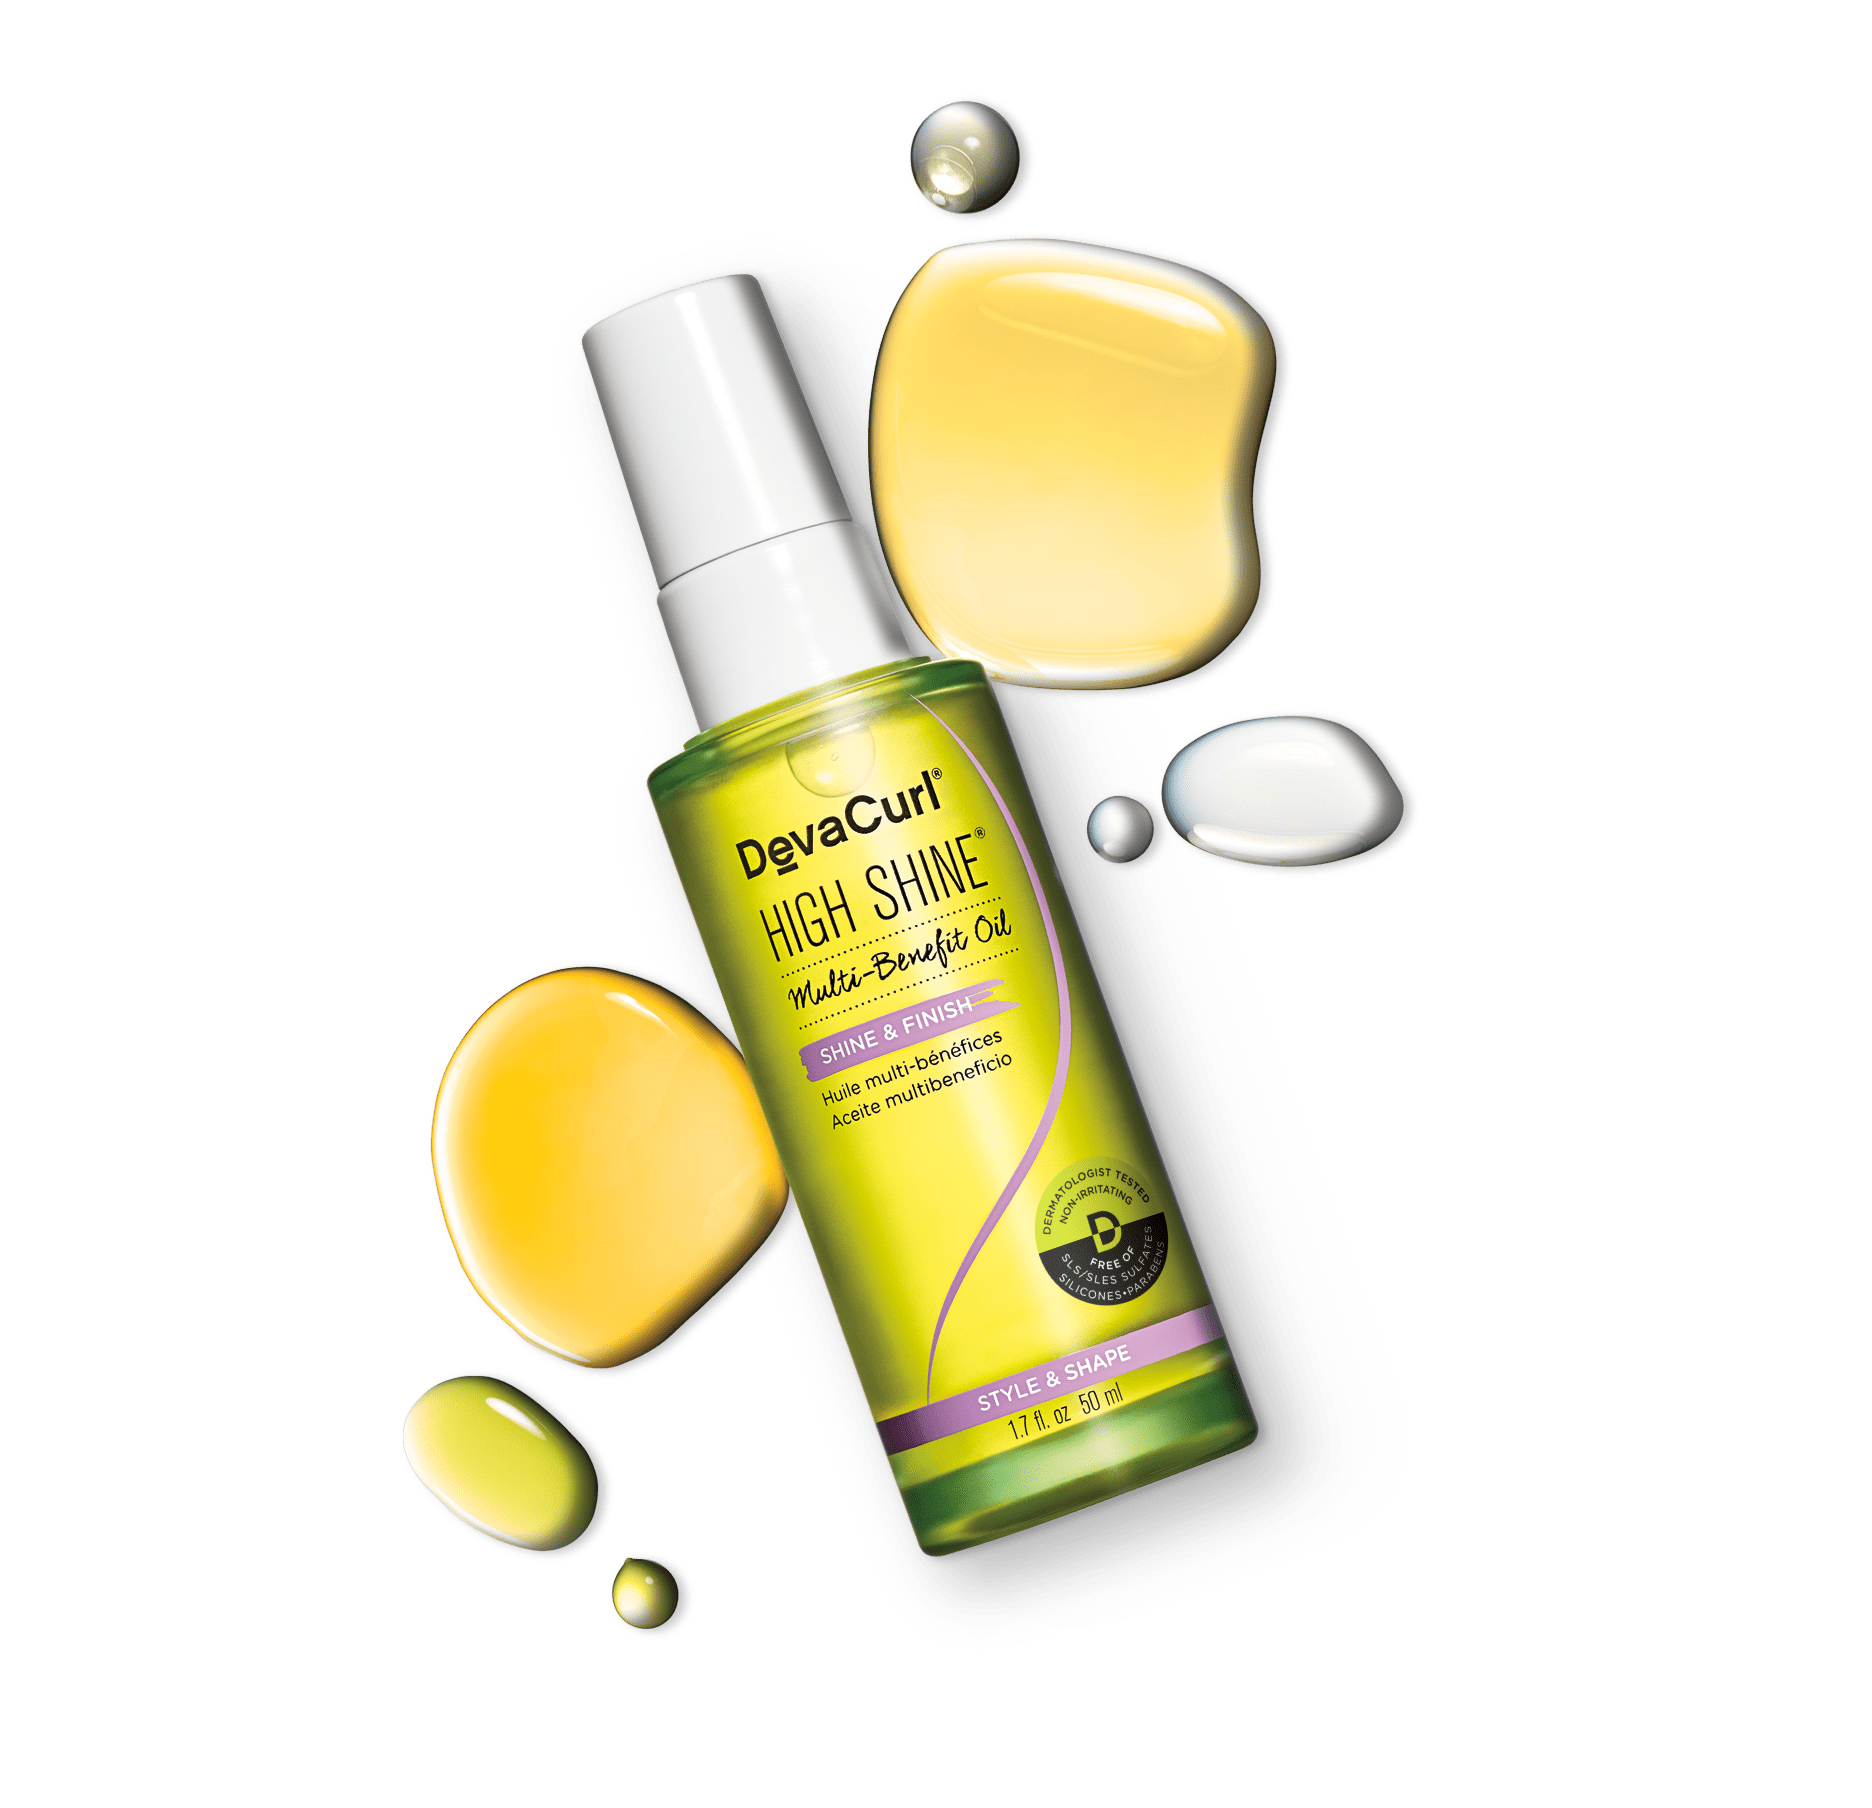 bottle of DevaCurl high shine with oil splash